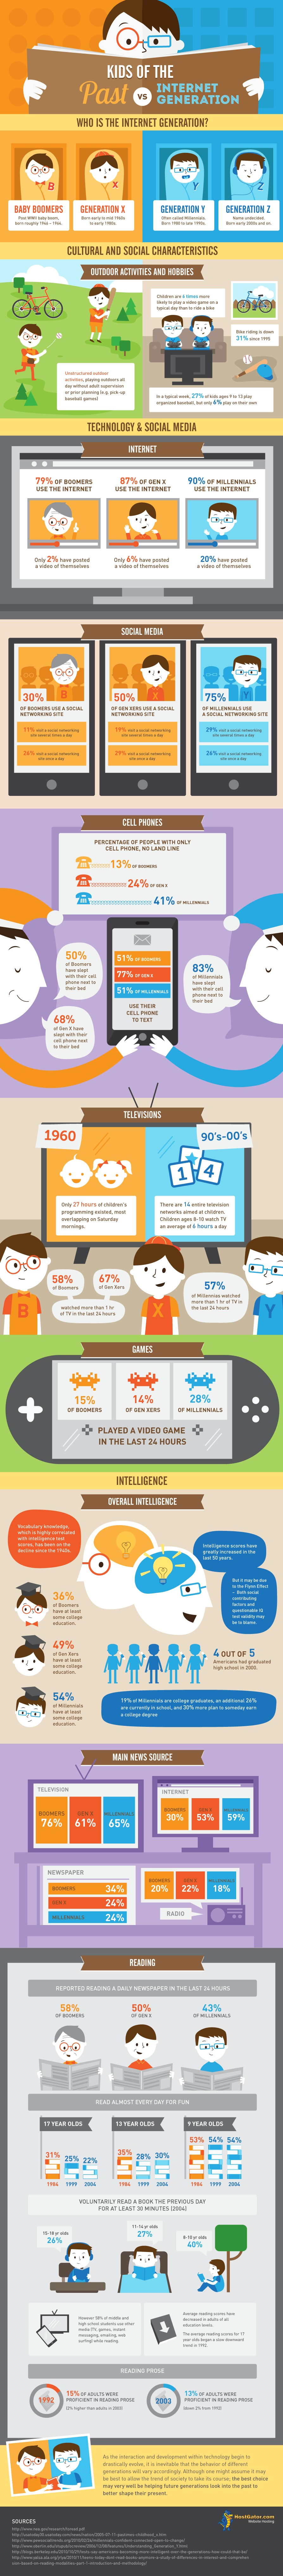 differences_in_kids_infographic